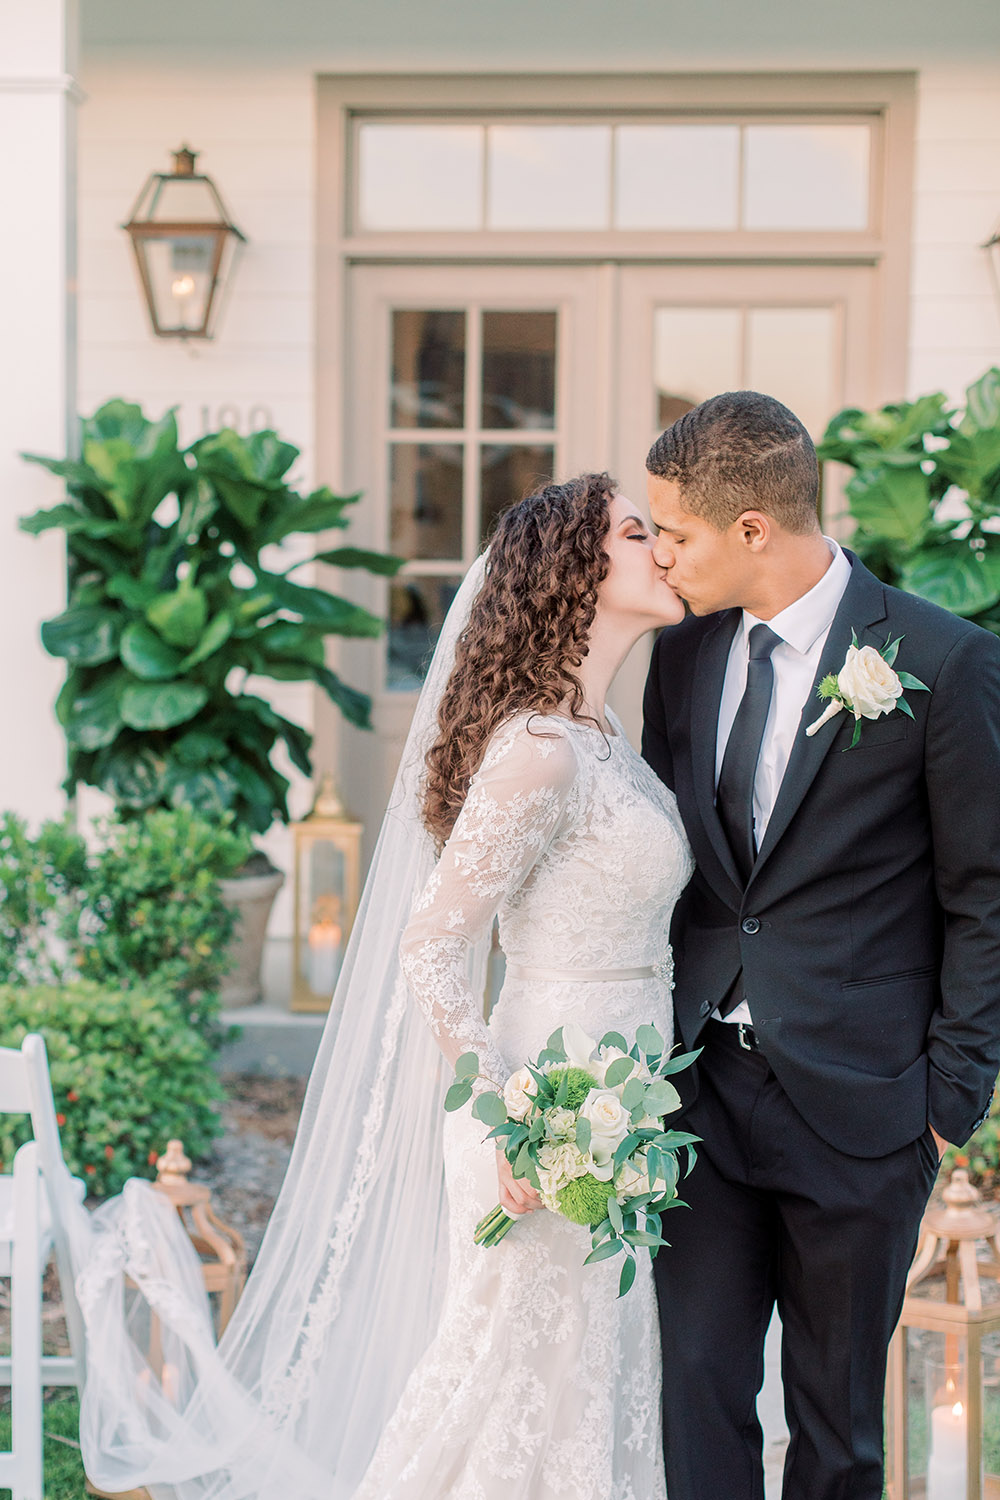 A bride and groom kiss during a front porch wedding ceremony. Photo: Ashley Kristen Photography